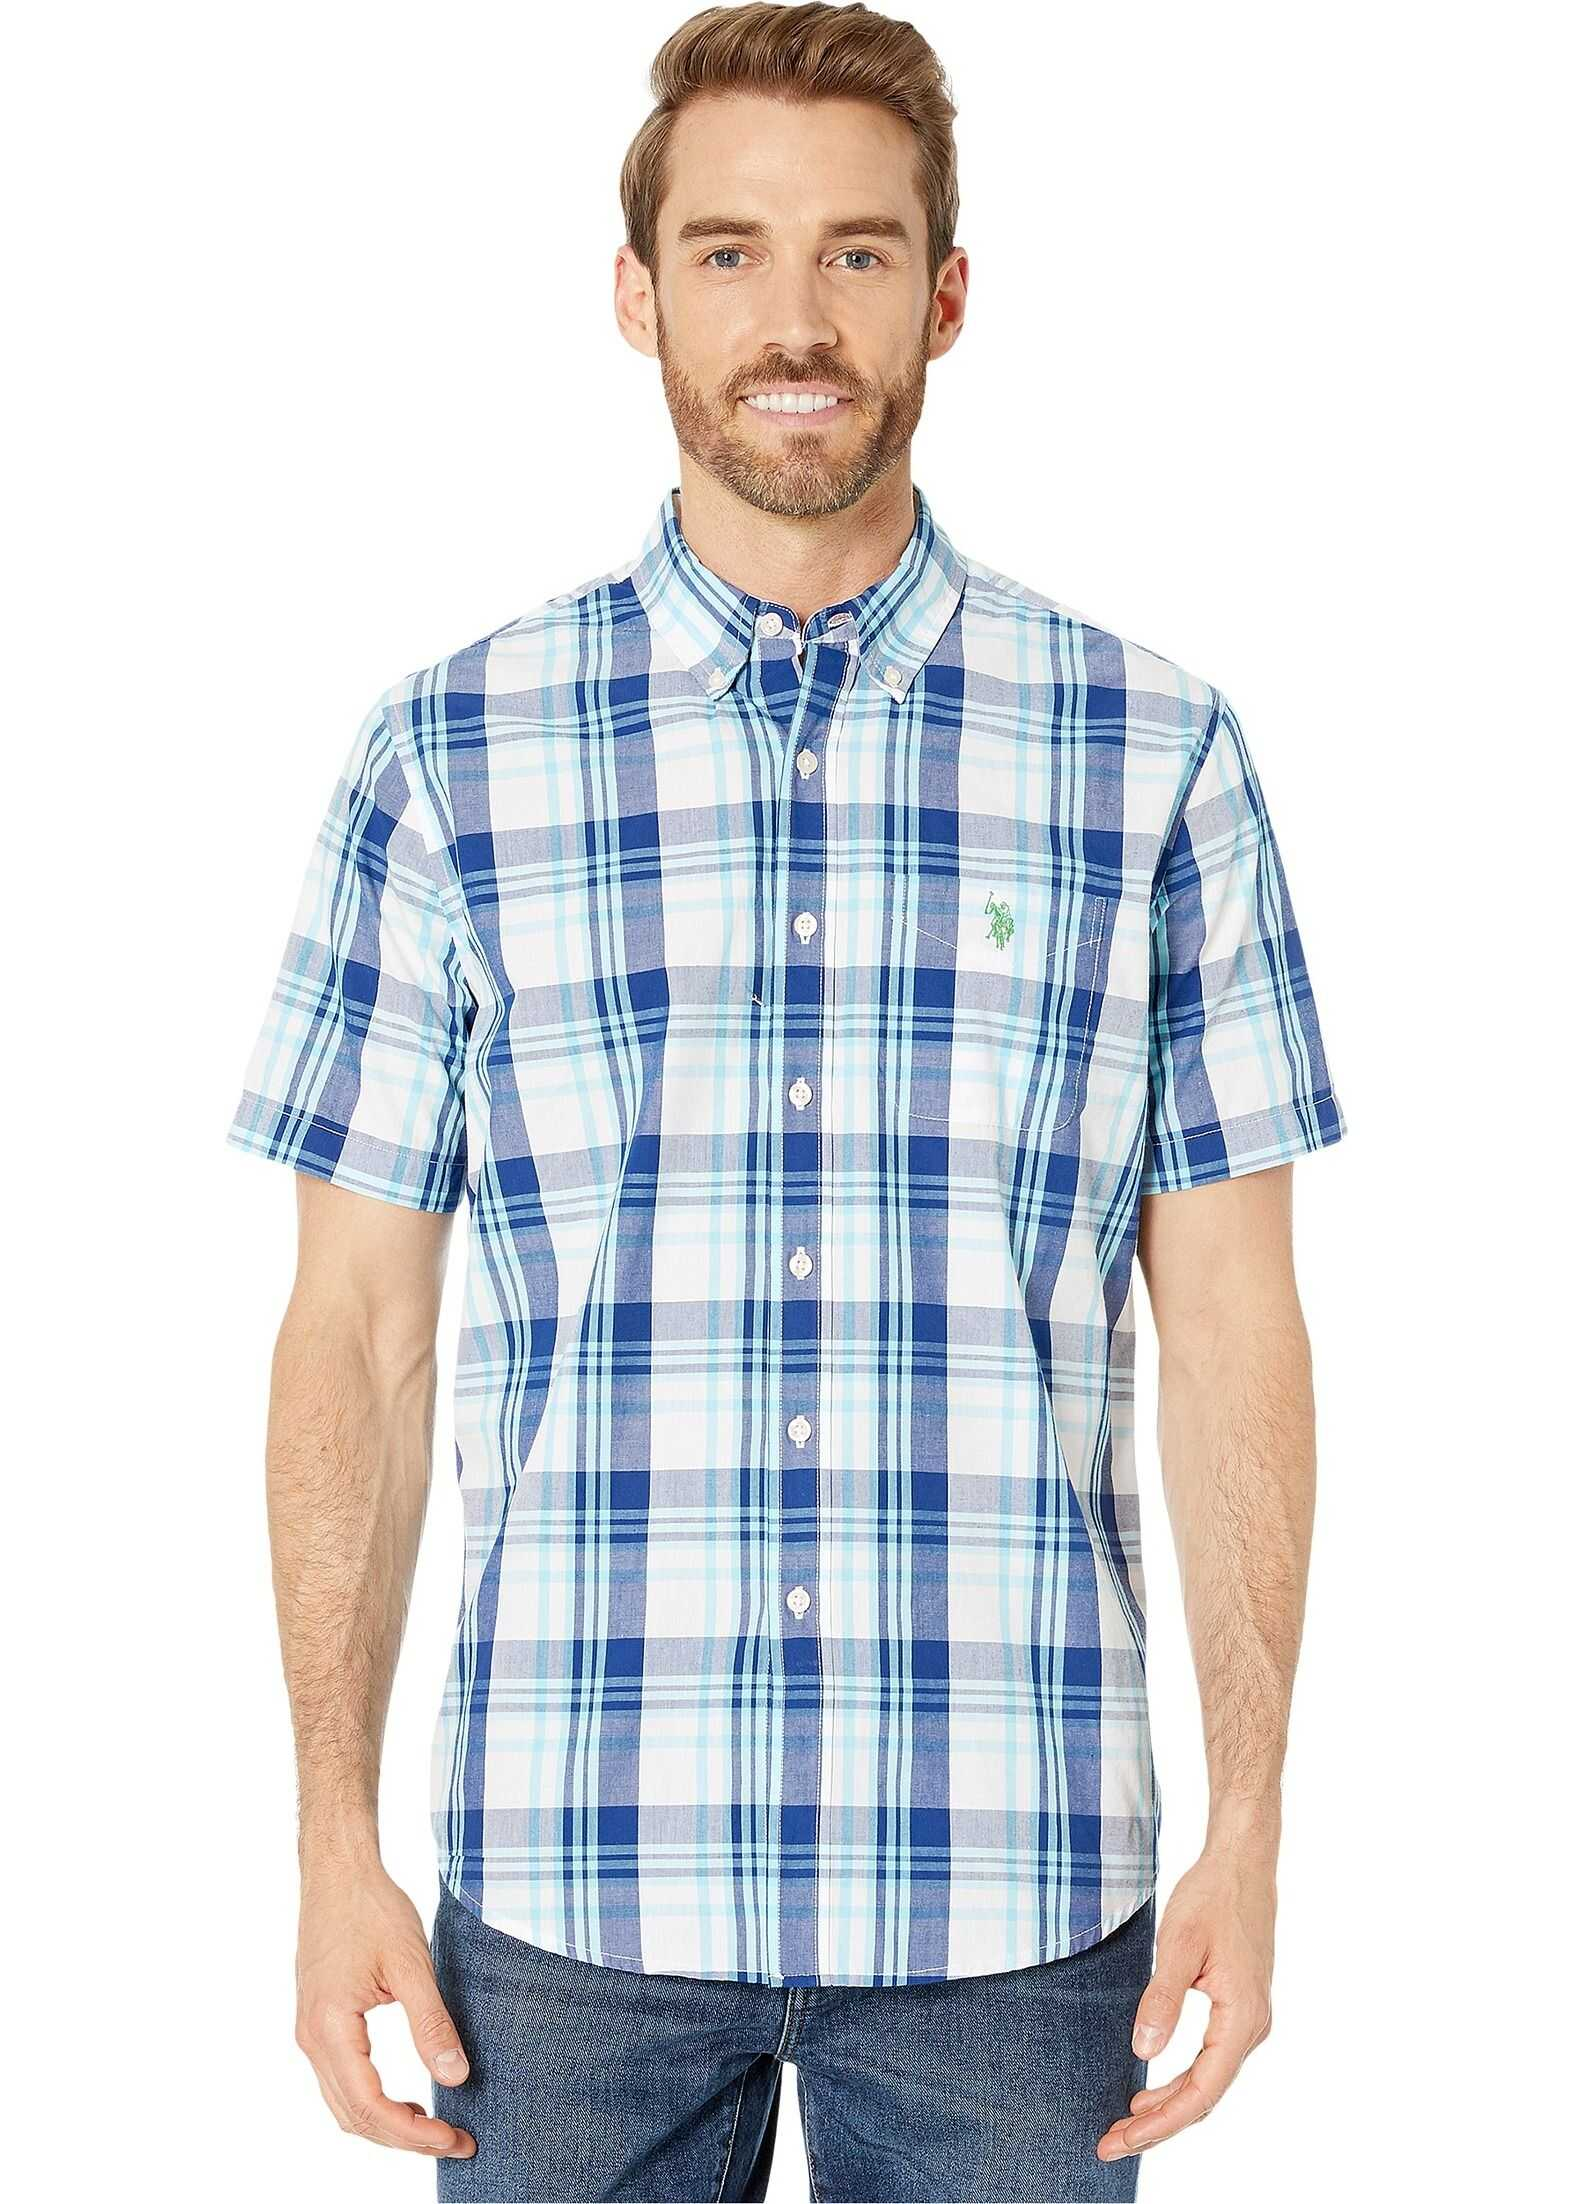 U.S. POLO ASSN. Short Sleeve Large Plaid Woven Optic White